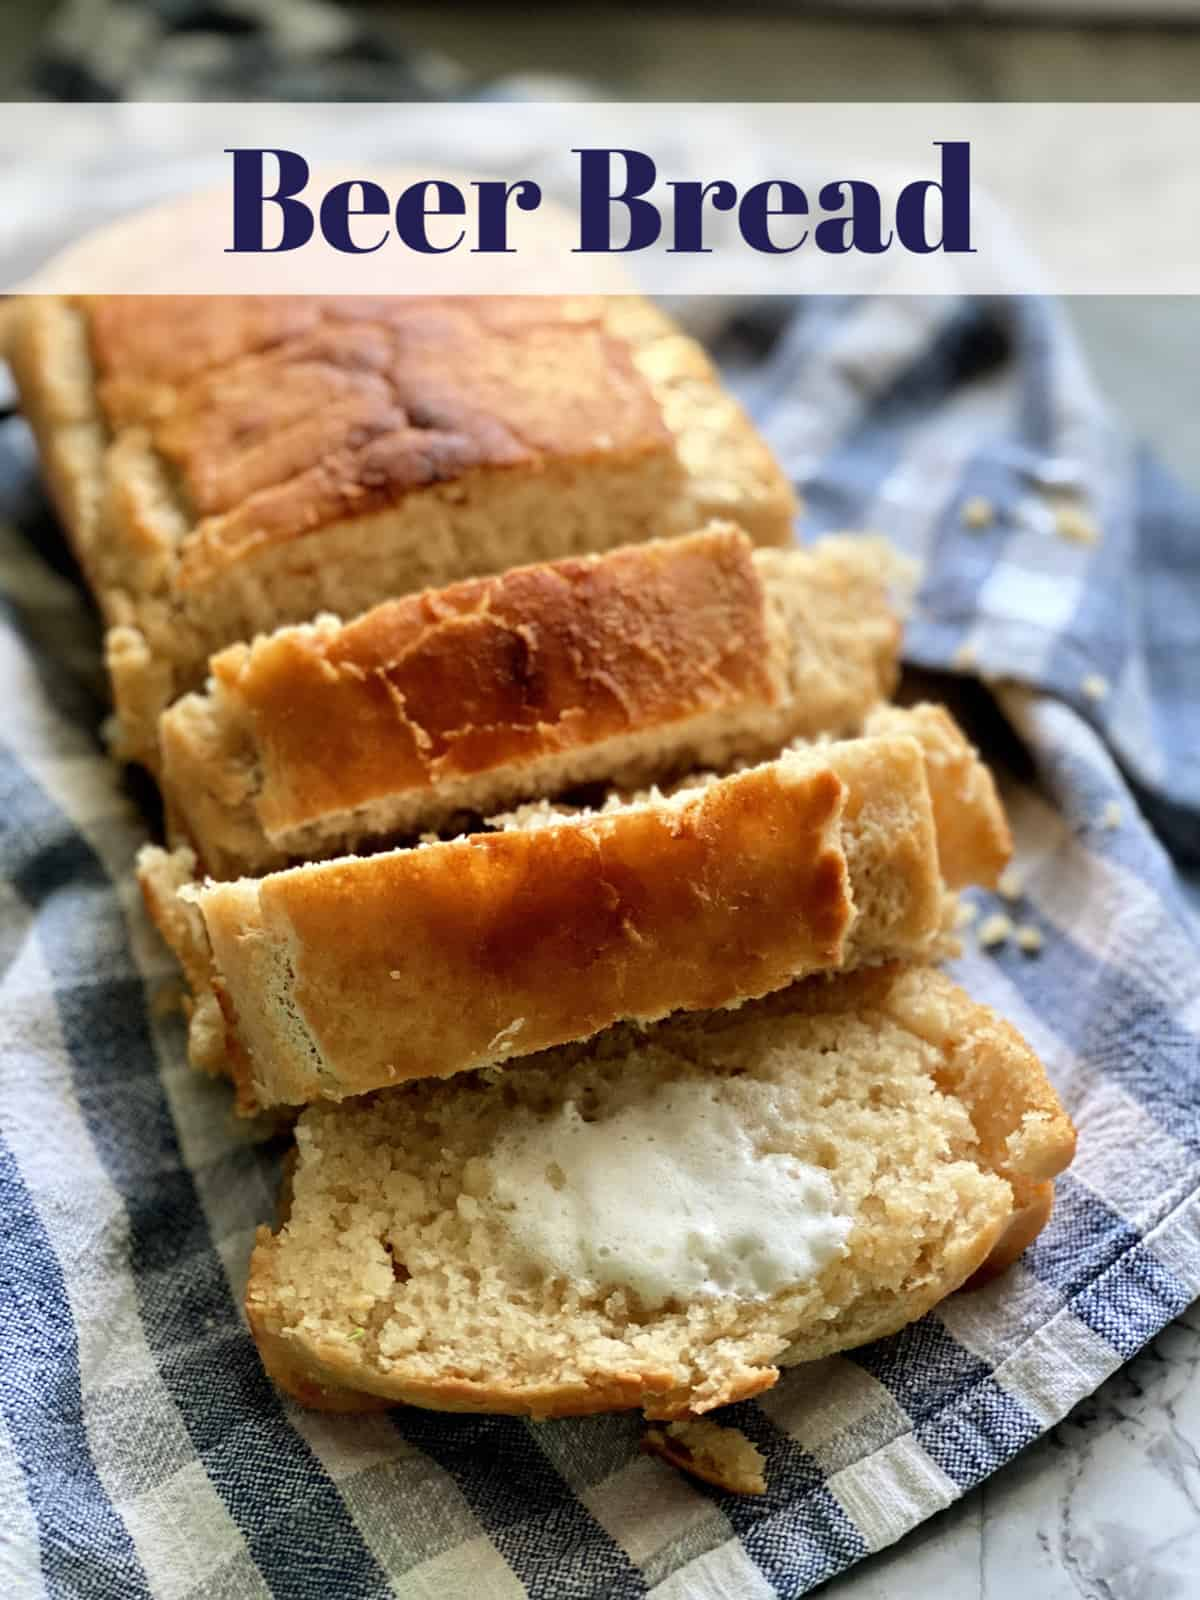 Sliced loaf of Beer Bread resting on tablecloth with title text.